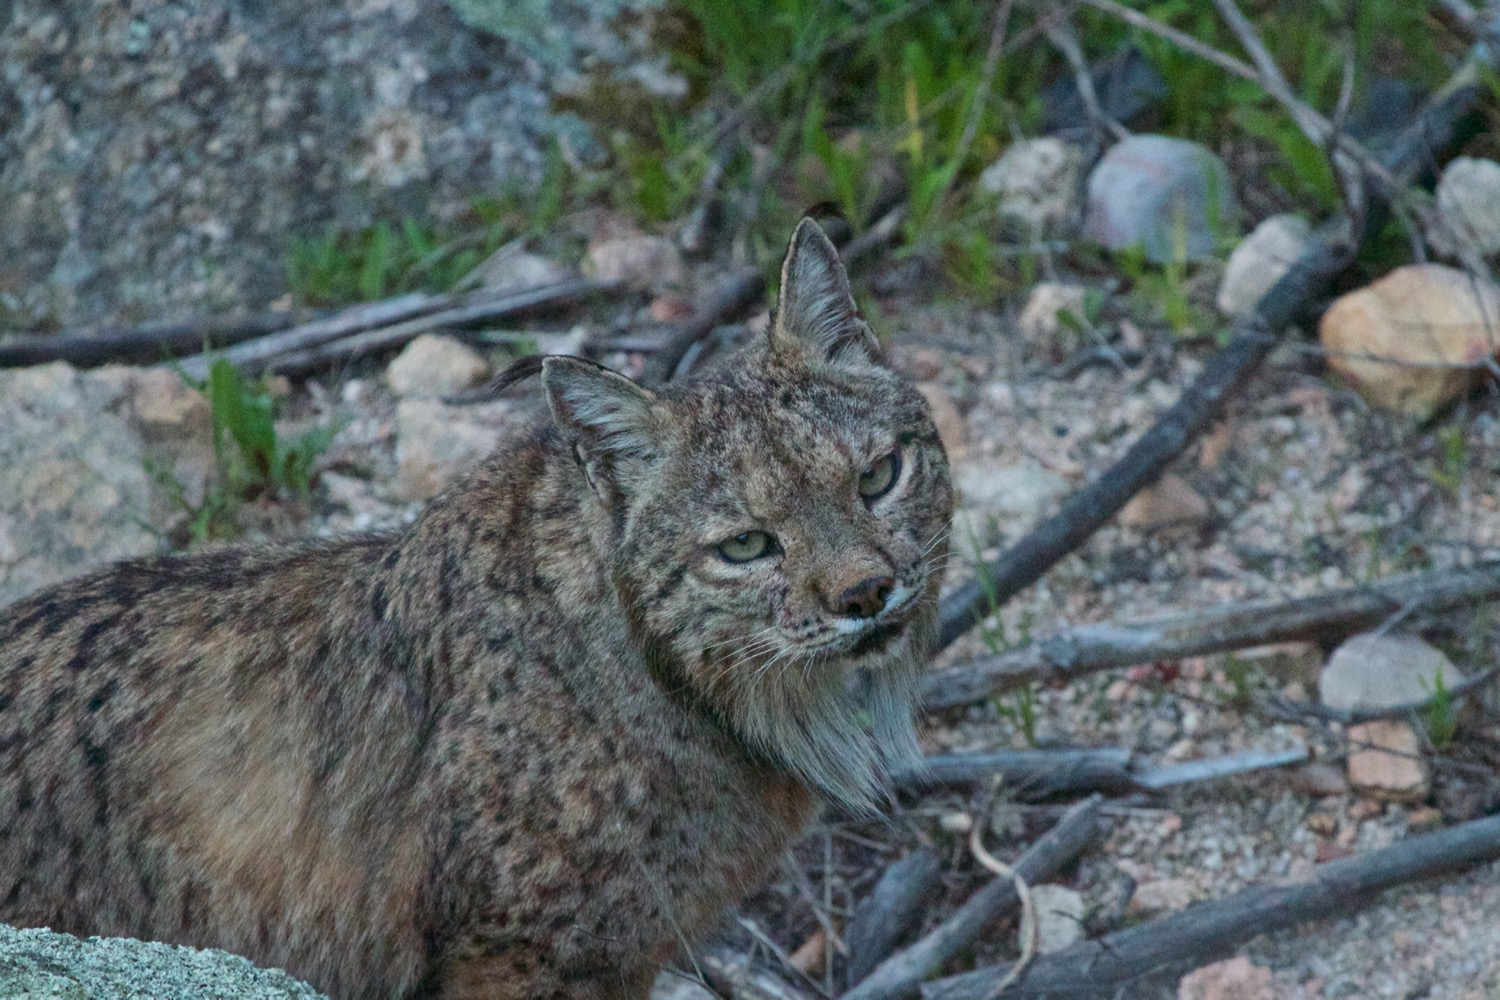 Iberian Lynx 2m behind me checking me out